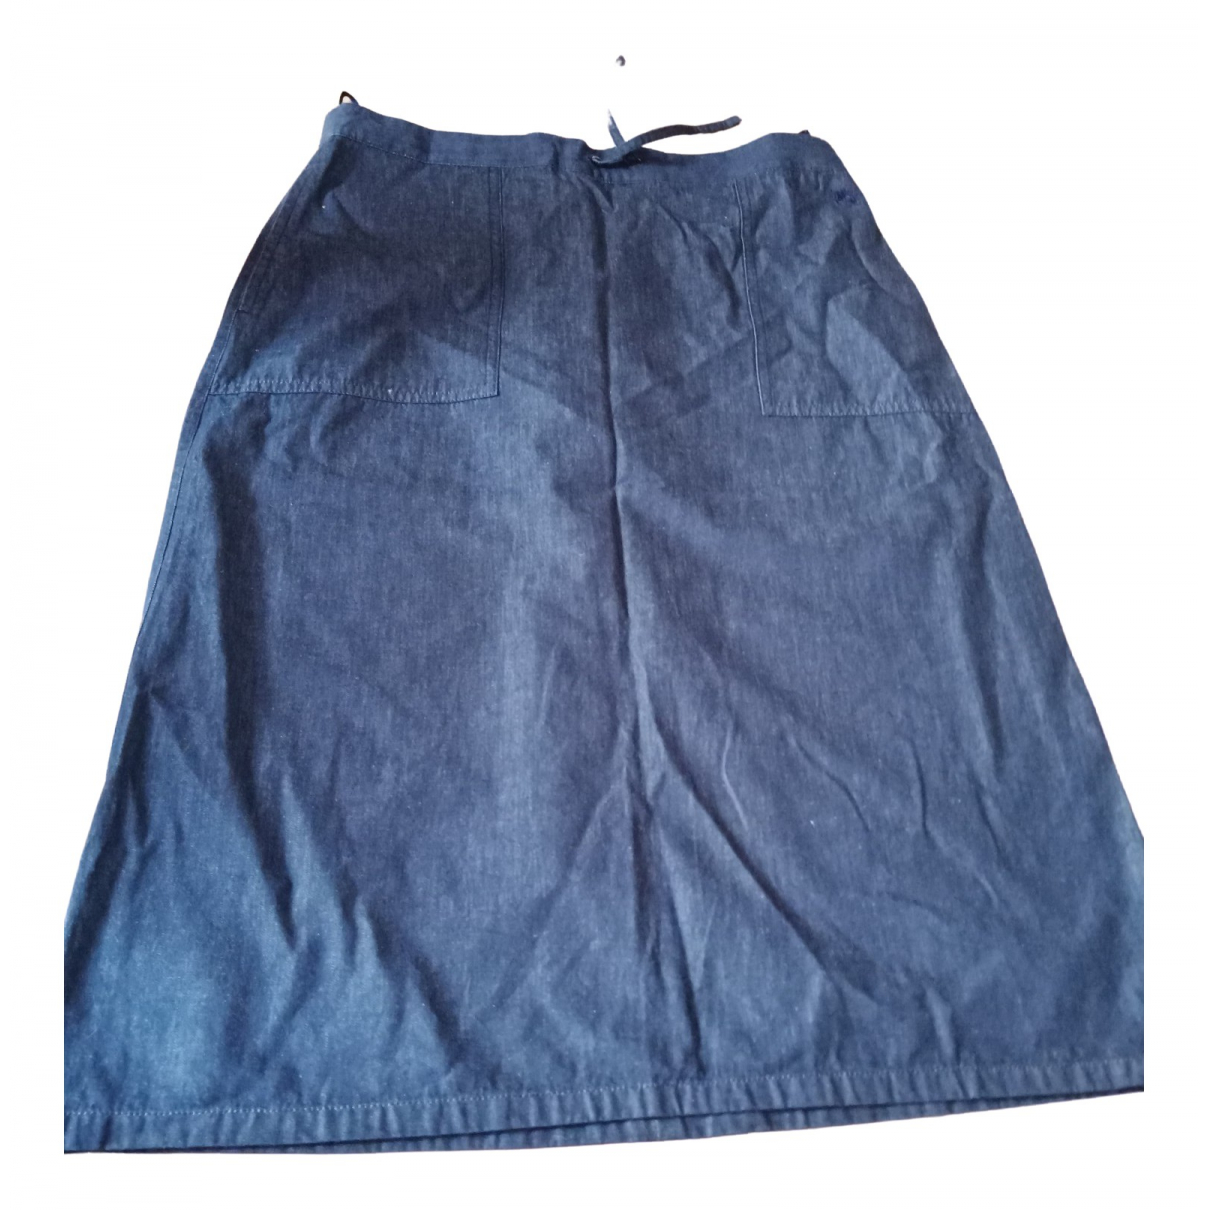 Burberry \N Navy Cotton skirt for Women 42 FR